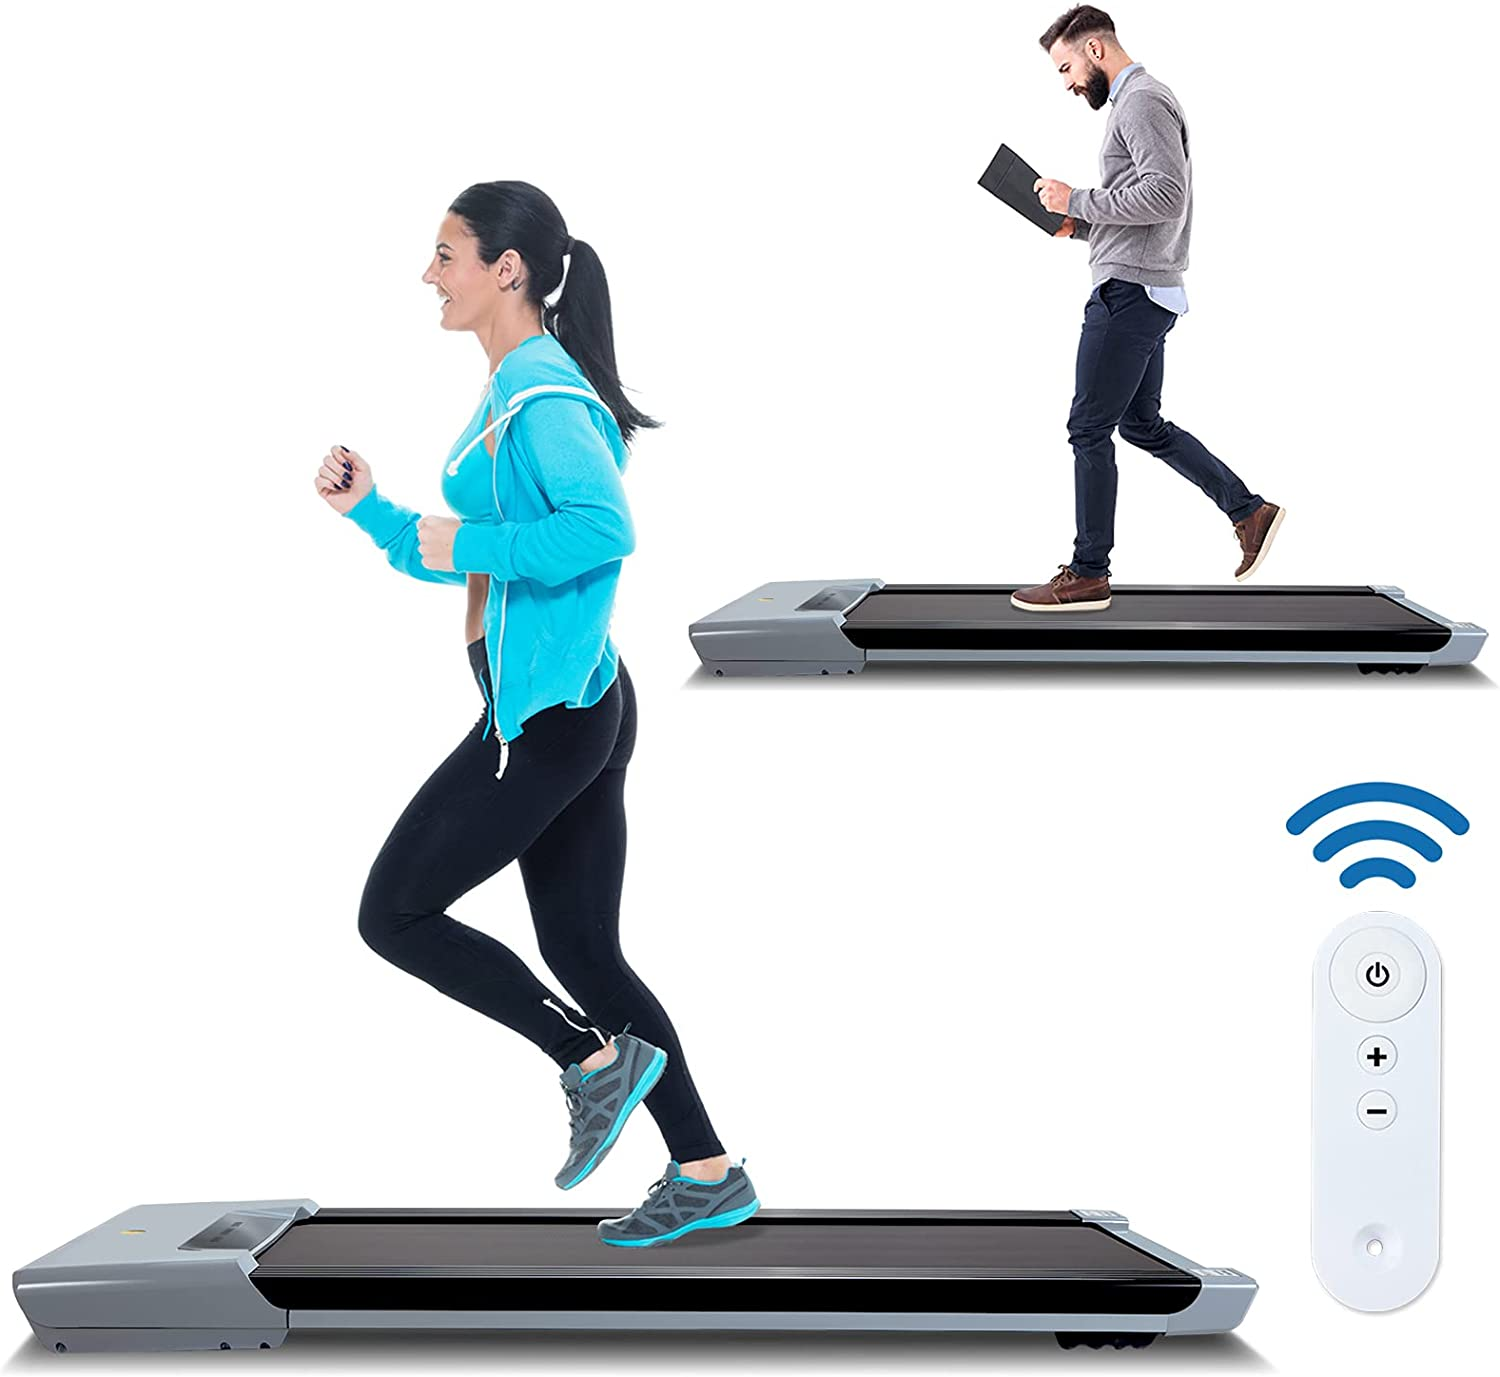 COOLNIC 2 Brand new Cash special price in 1 Electric Treadmill Walking Under with Wirele Desk